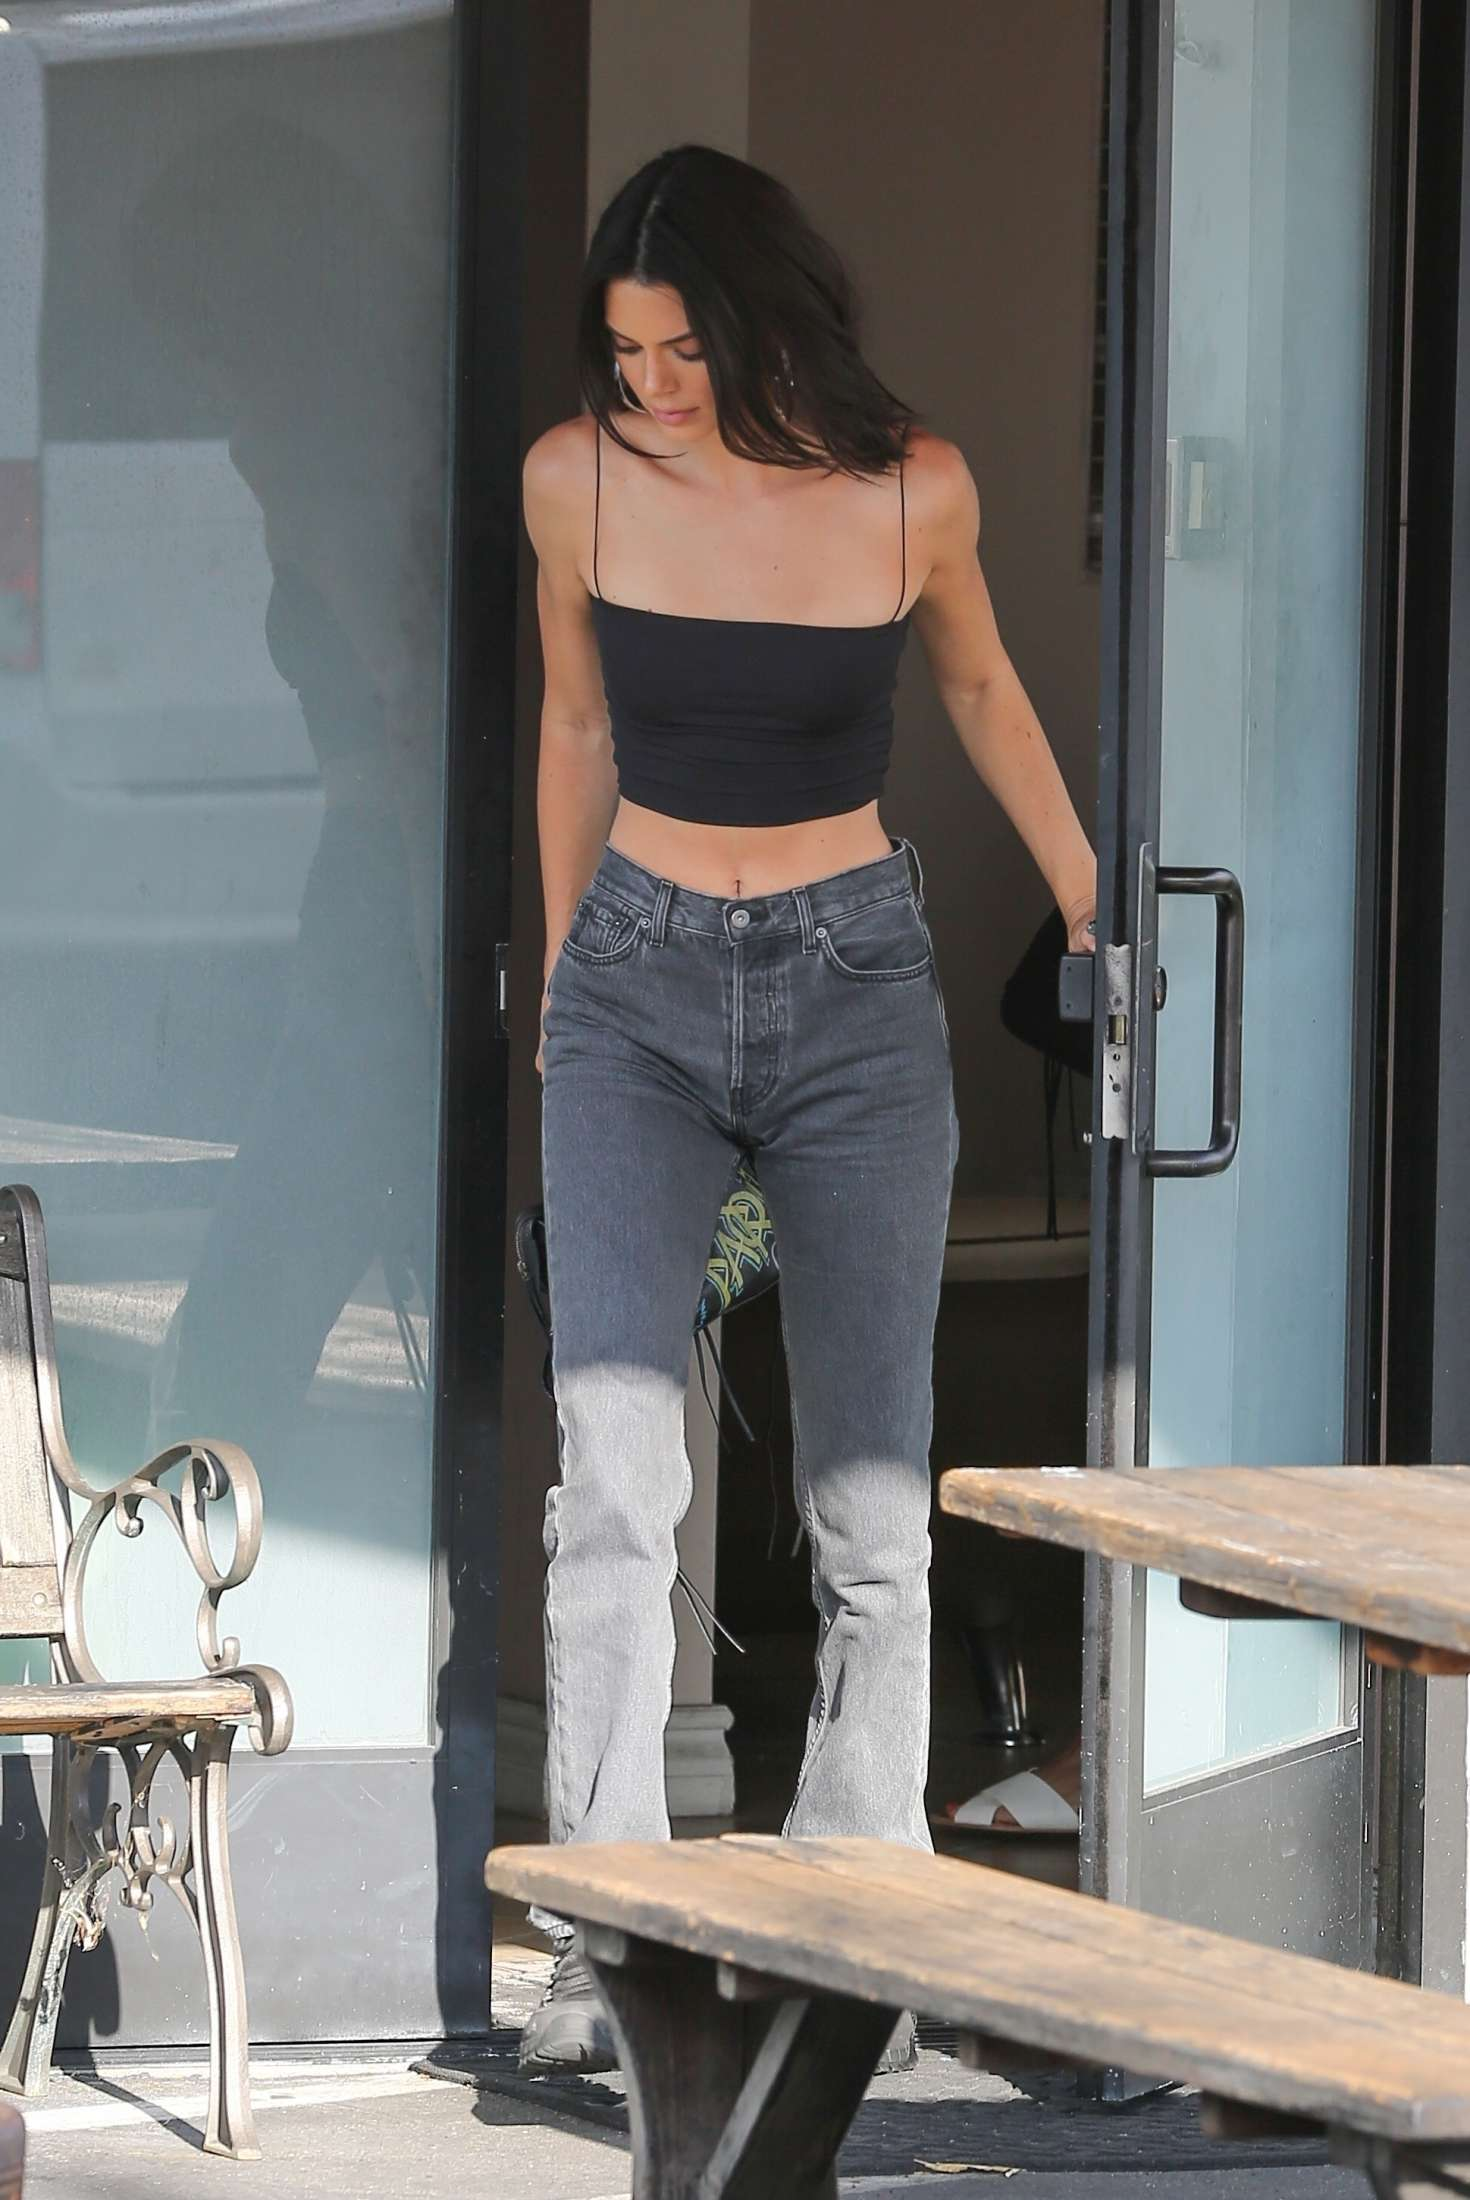 Kendall Jenner donning chunky grey Reebok lace-up sneakers with chunky sole